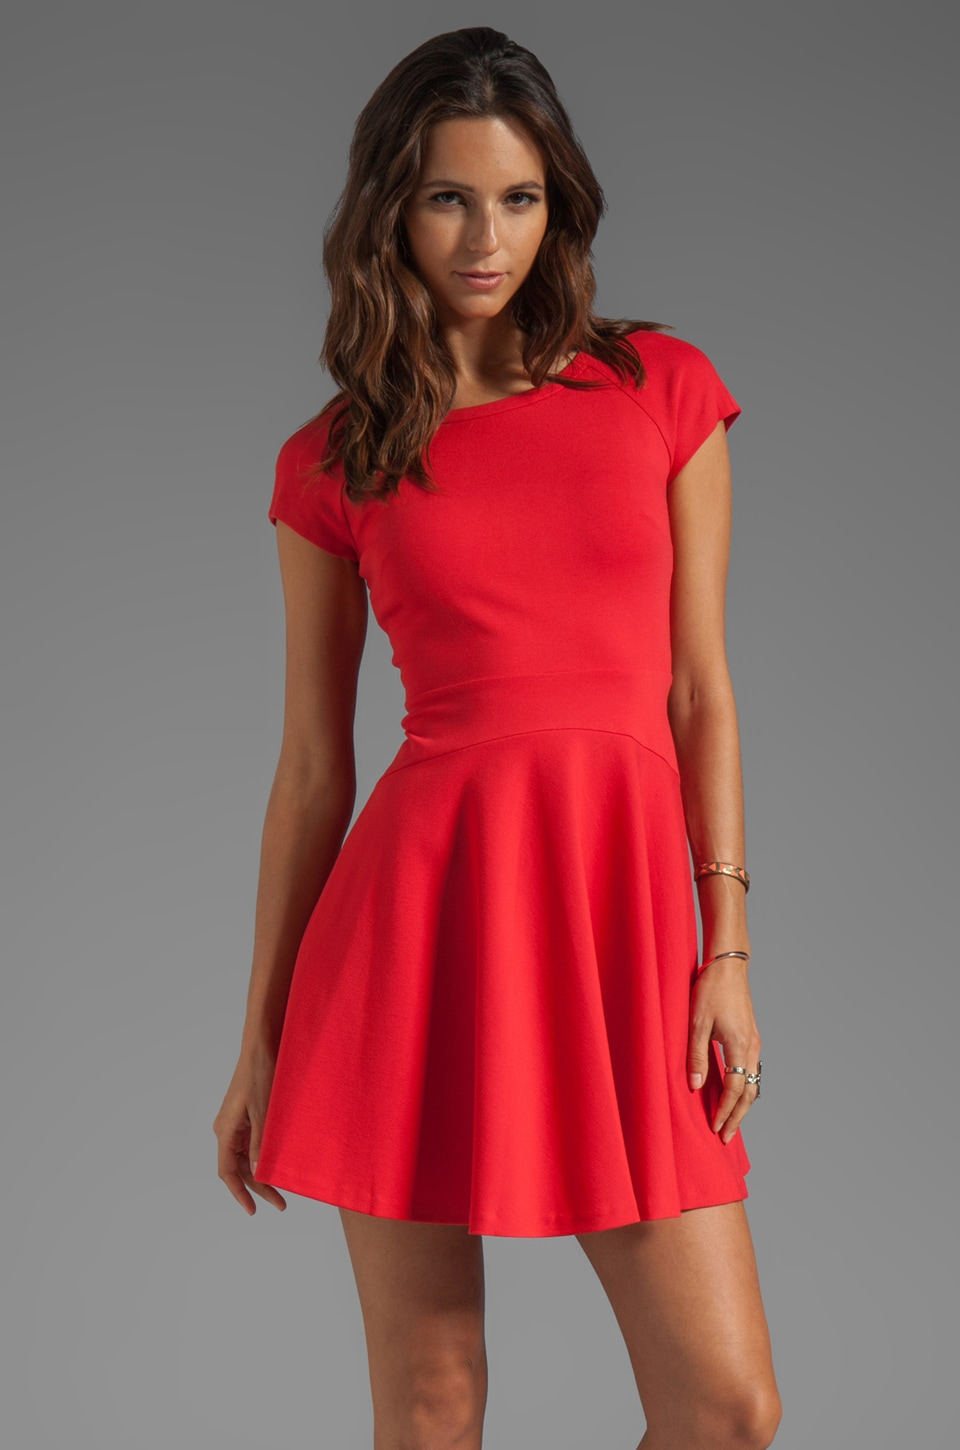 Diane von Furstenberg Delyse Dress in Crimson